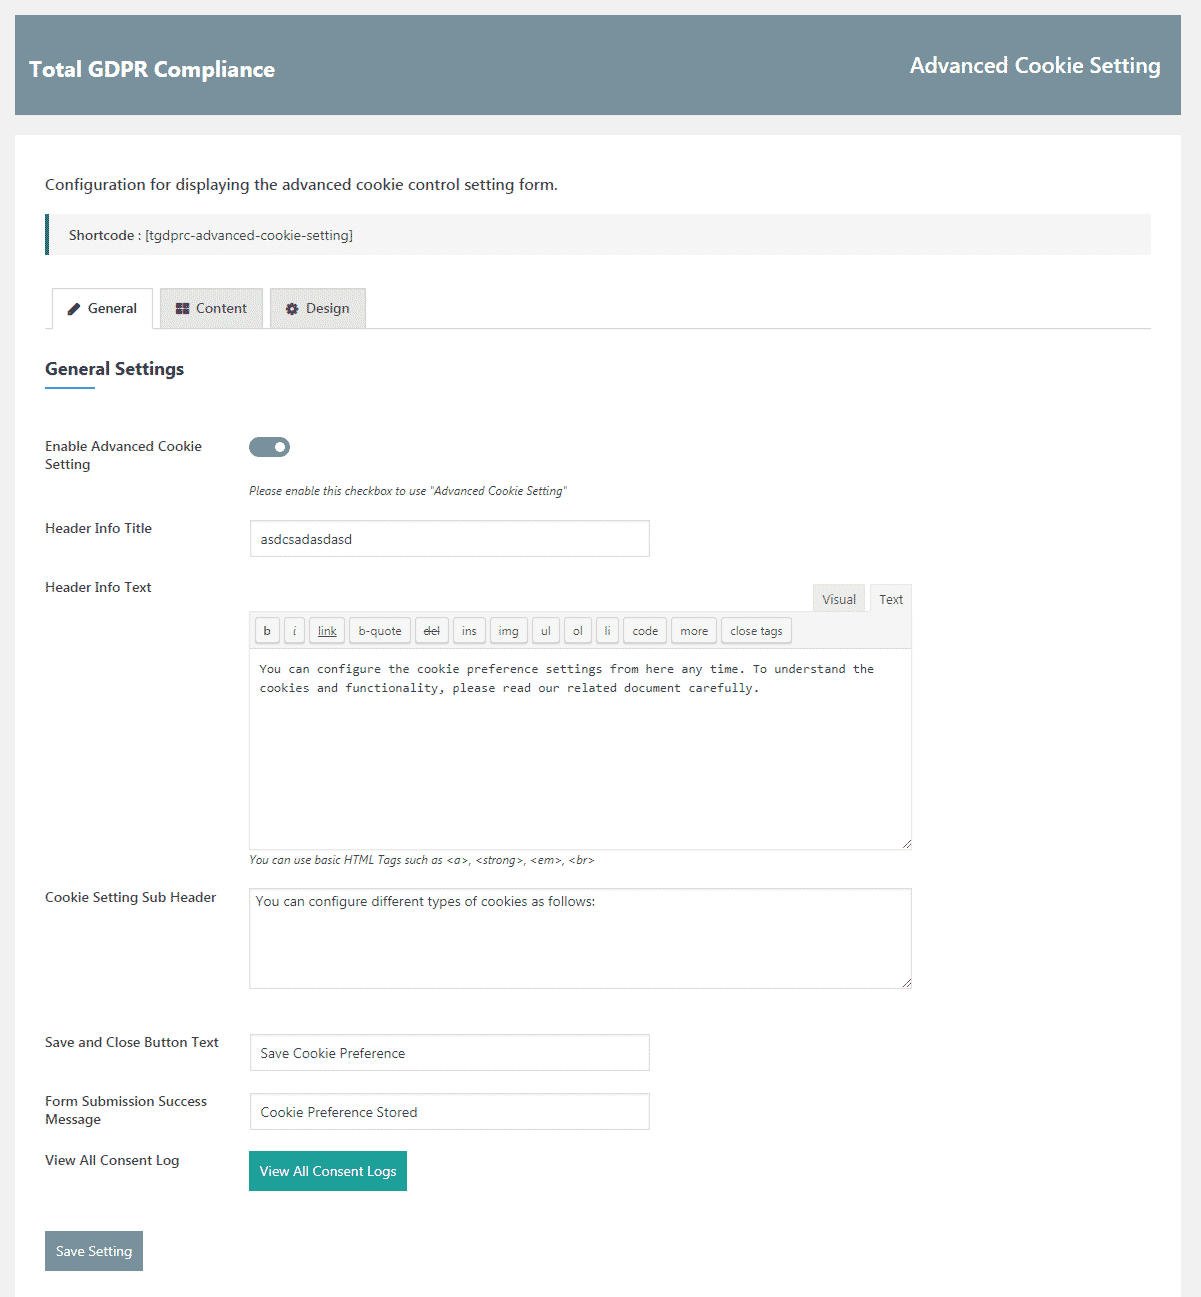 Total GDPR Compliance: Advanced Cookie